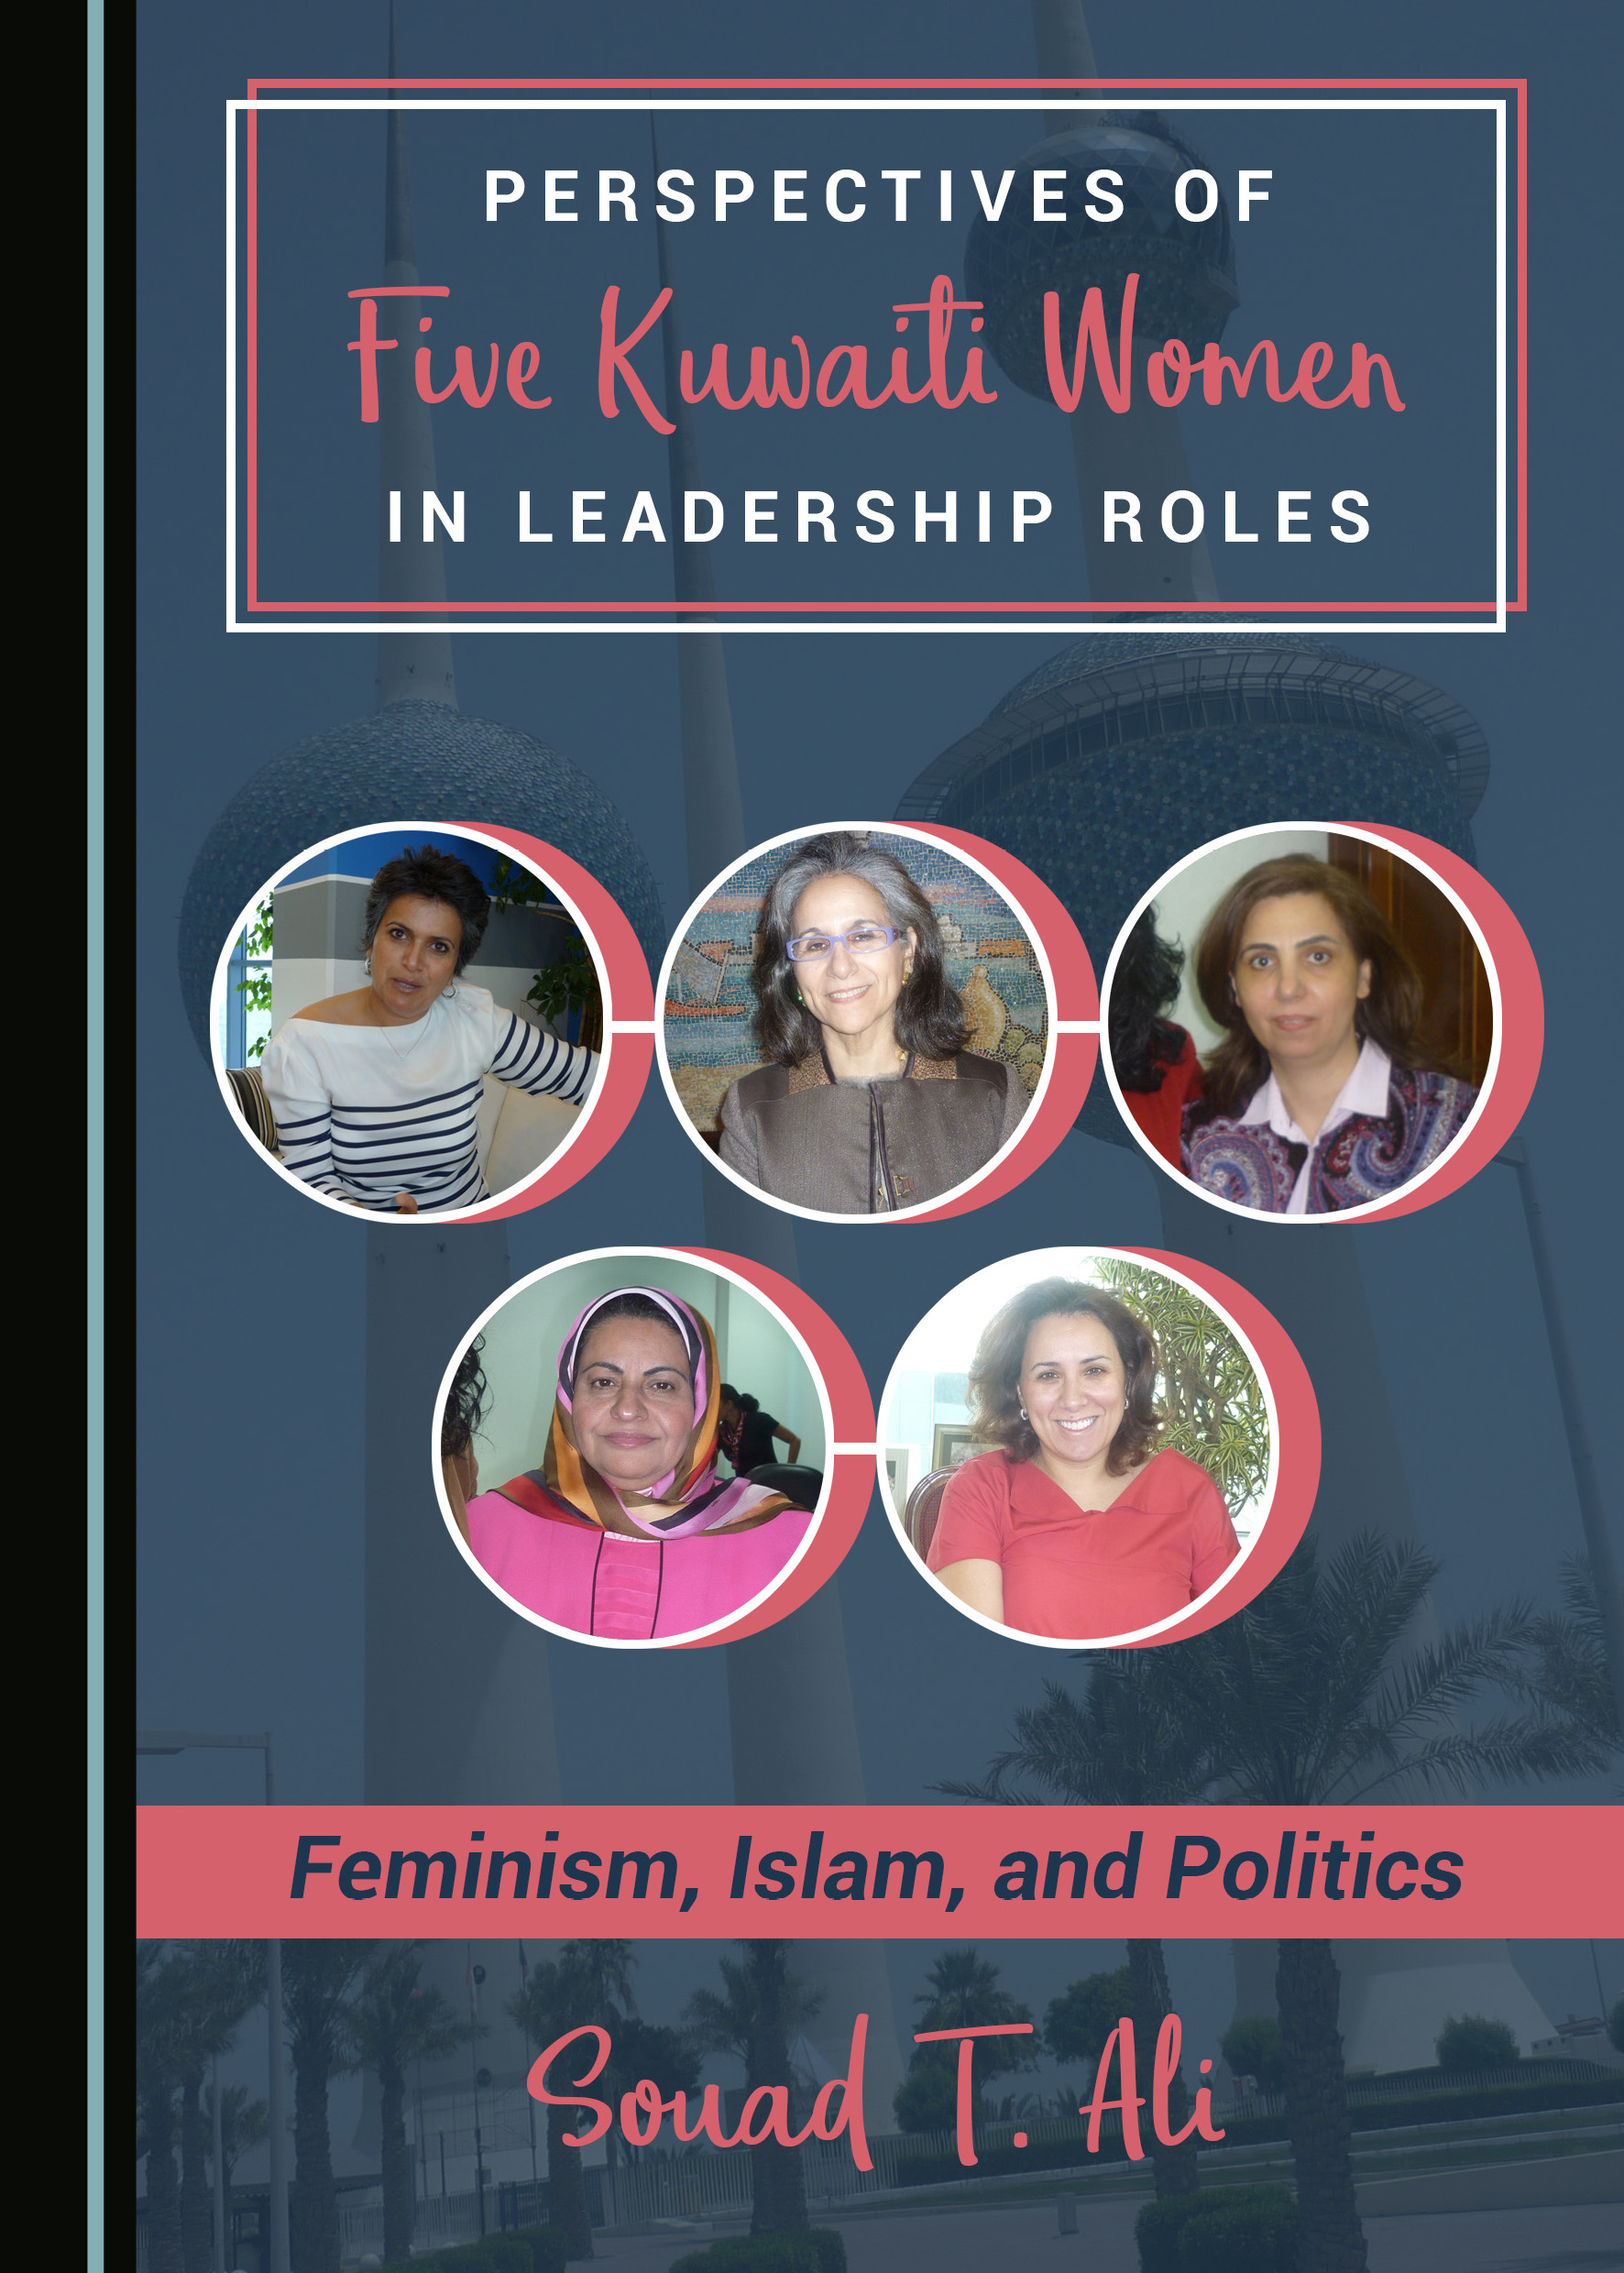 Perspectives of Five Kuwaiti Women in Leadership Roles: Feminism, Islam, and Politics